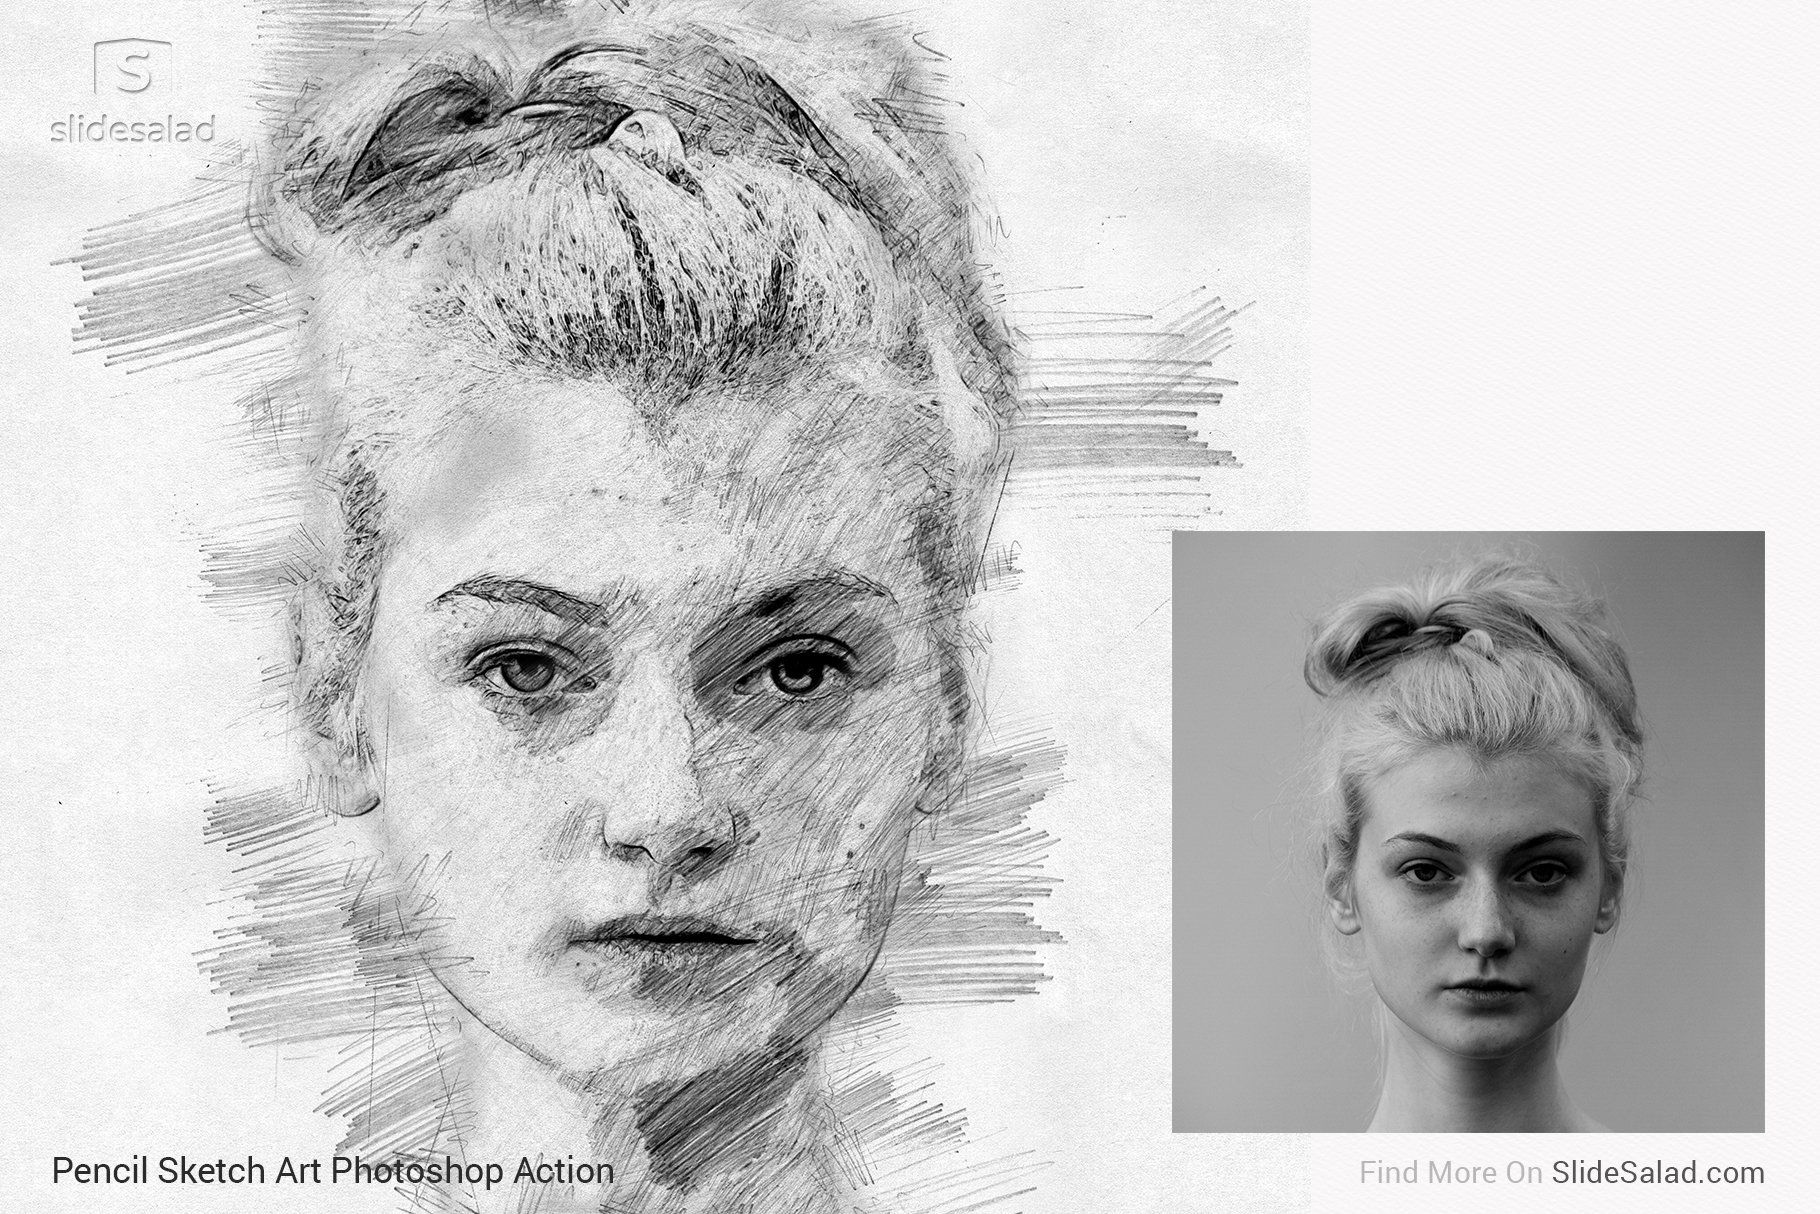 Pencil Sketch Art Photoshop Action Art Sketches Pencil